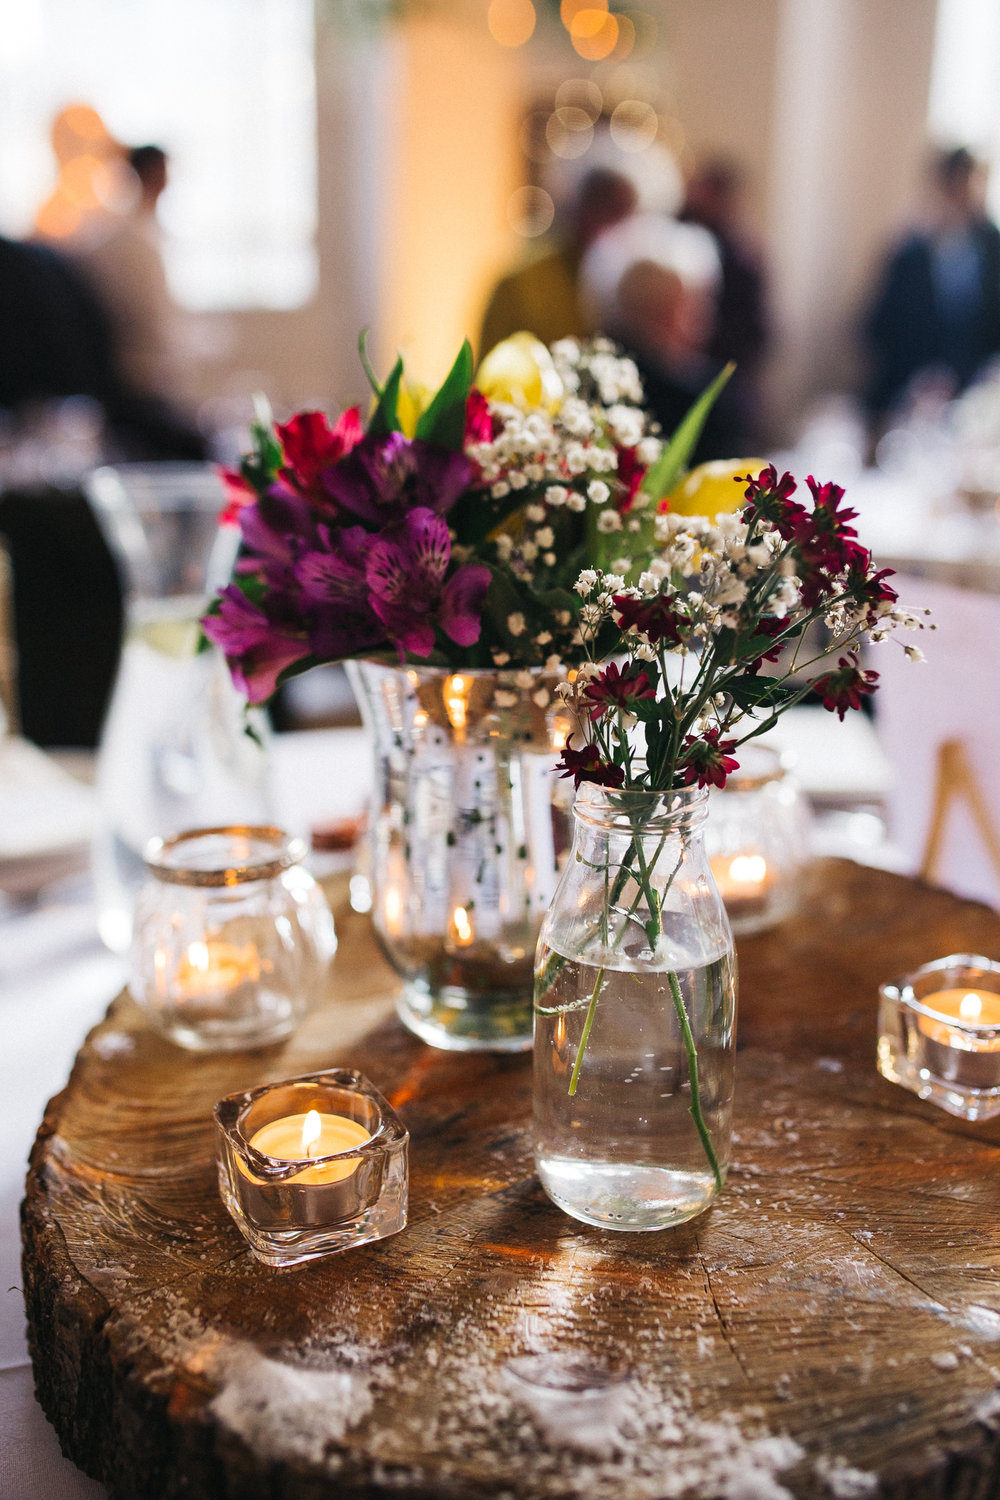 a close up shot of table decorations - wildflowers in glass vases. ceremony at st georges hall liverpool, oh me oh my wedding reception, north west wedding photographer